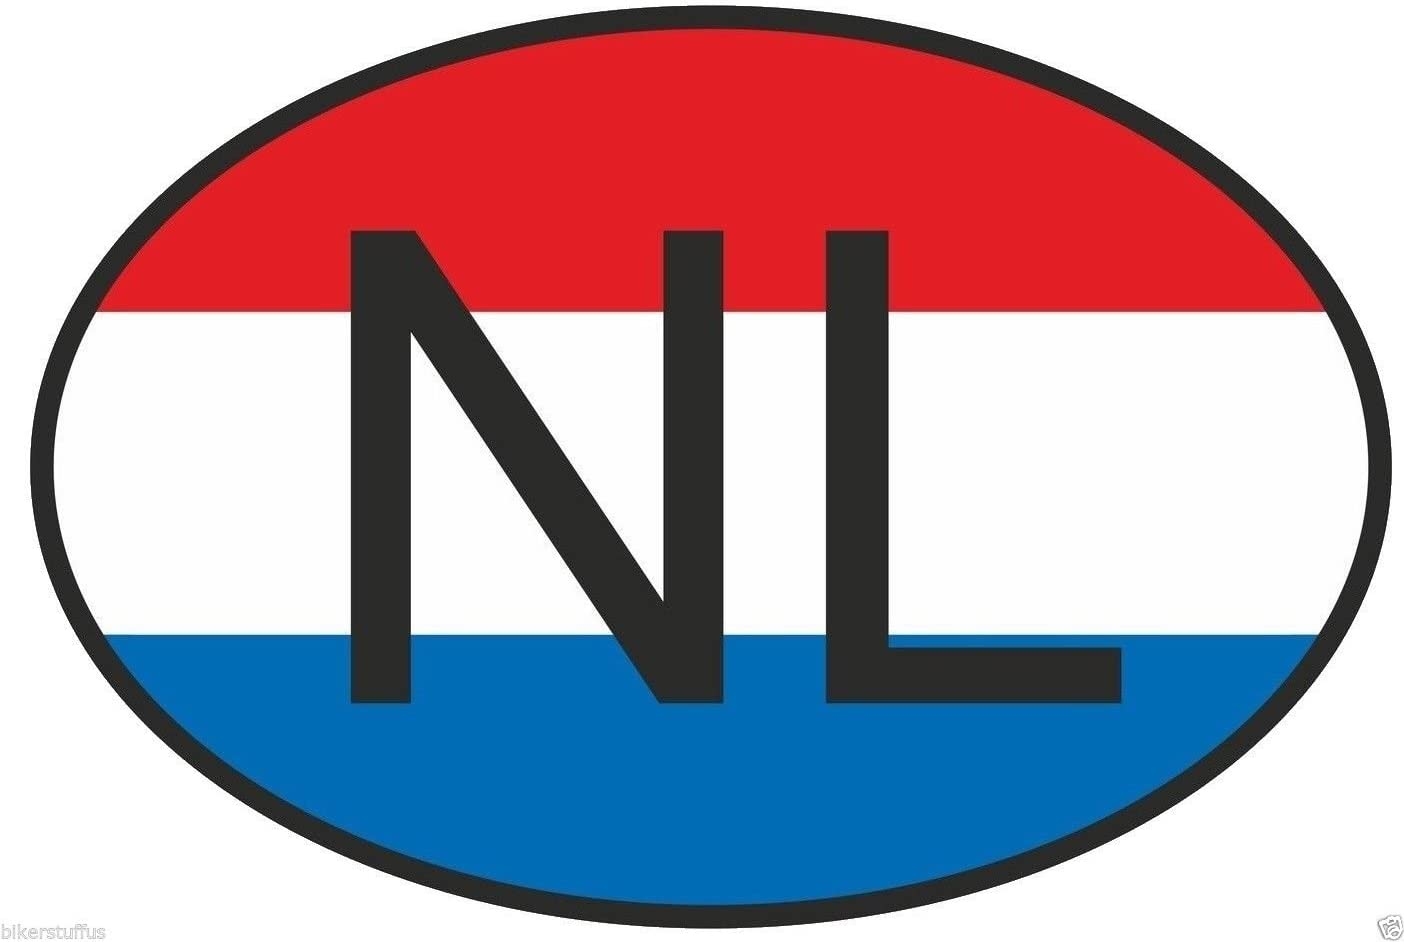 HOLLAND STICKER OVAL COUNTRY CODE LOGO BADGE MOTORCYCLE CAR LAPTOP 3 D NL